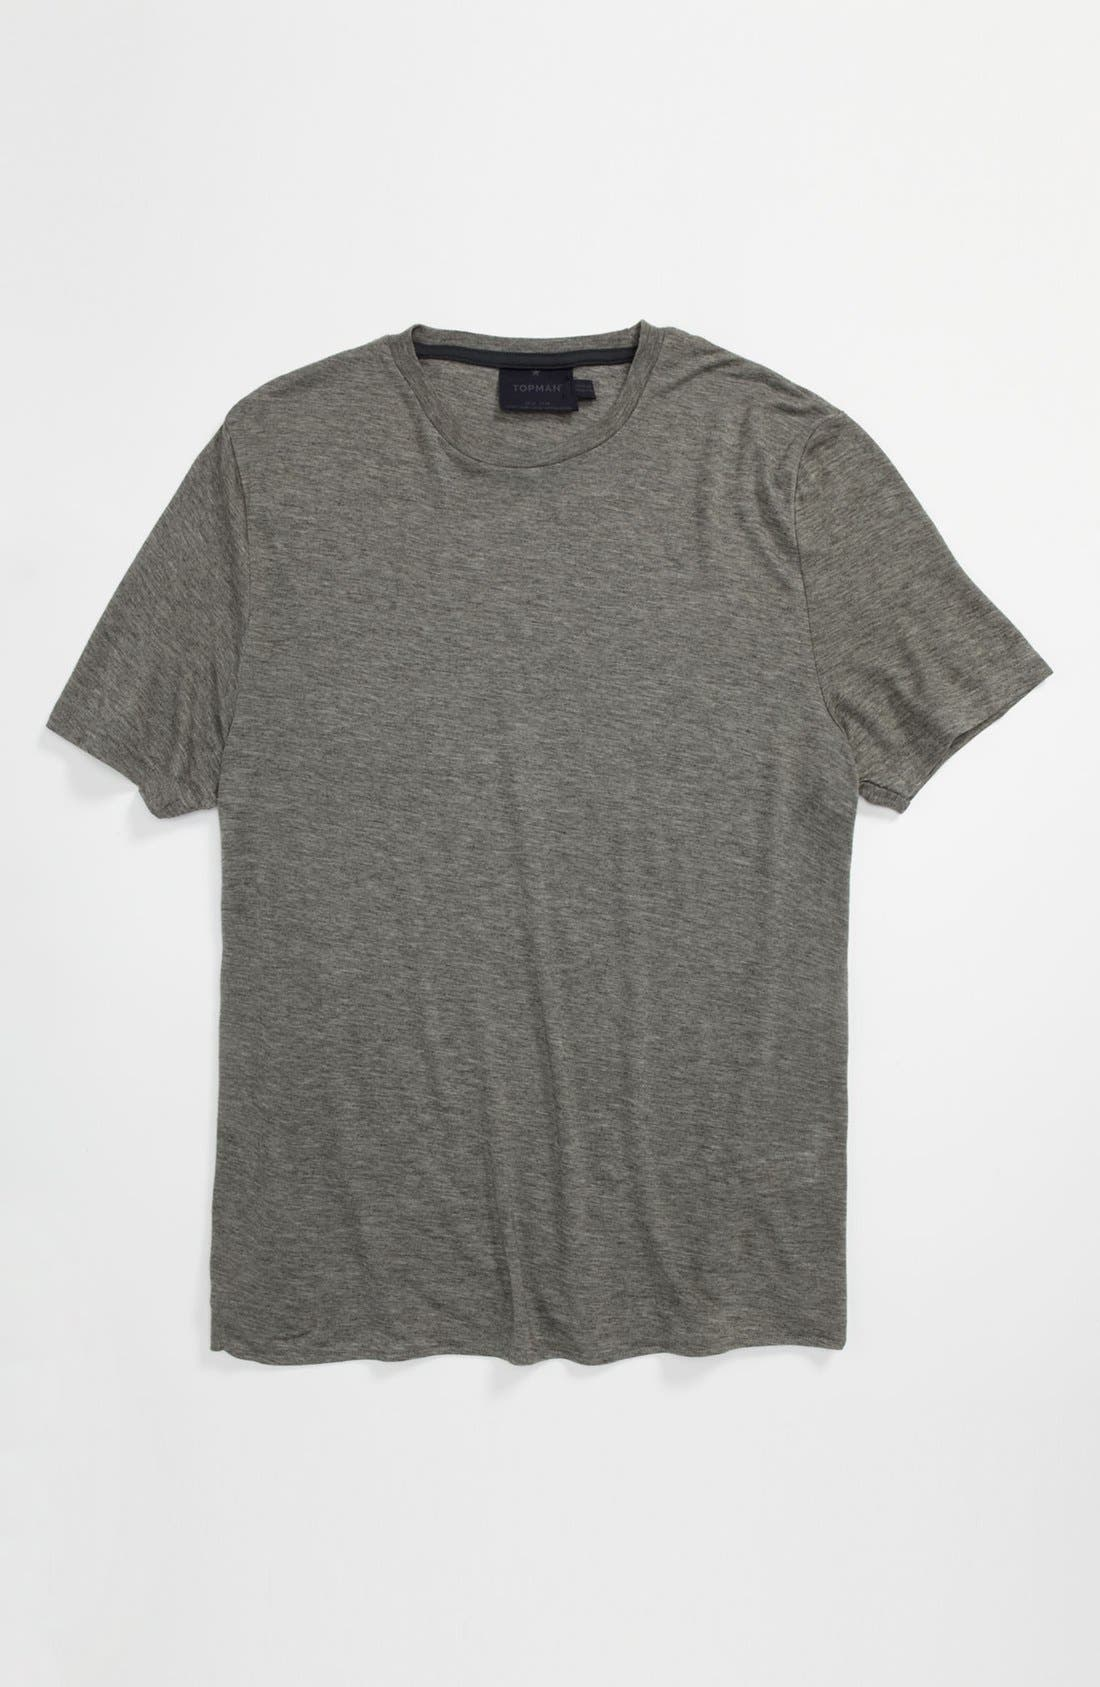 Alternate Image 1 Selected - Topman 'Lux Collection' Marled Wool Blend T-Shirt